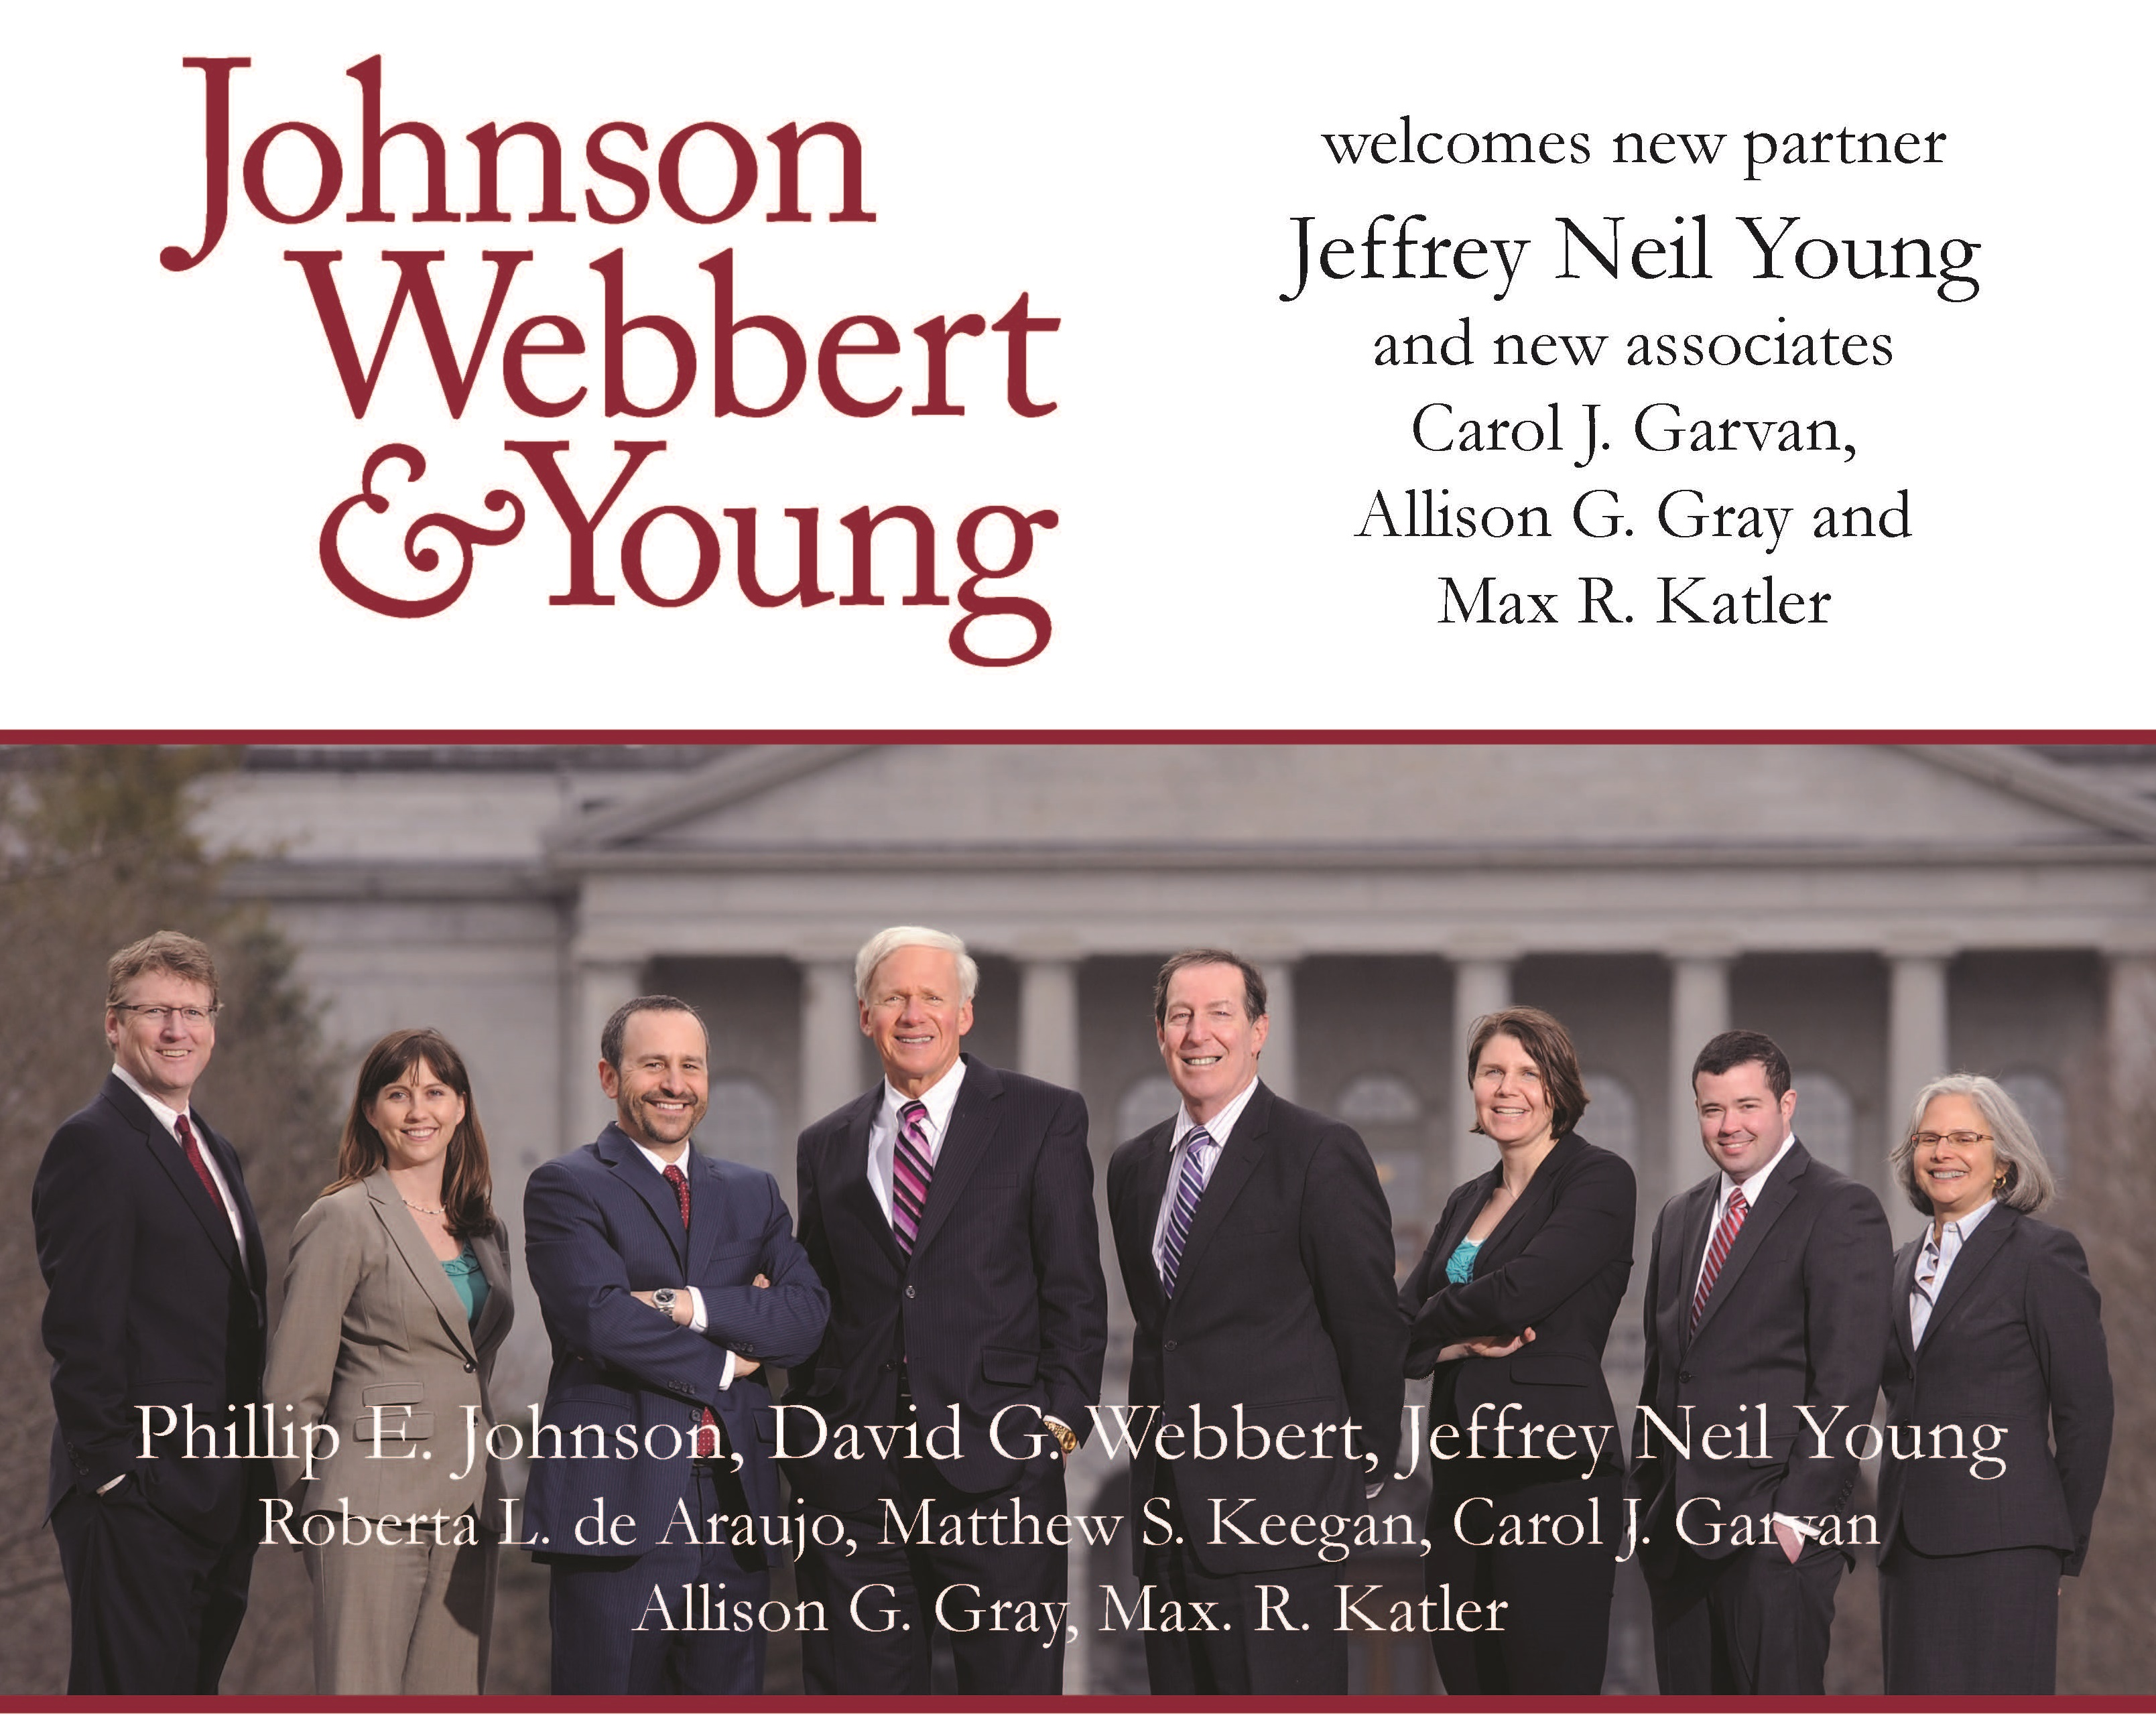 Johnson, Webbert & Young, LLP Welcomes new partner Jeffrey Neil Young and new associates Carol J. Garvan, Allison G. Gray and Max R. Katler